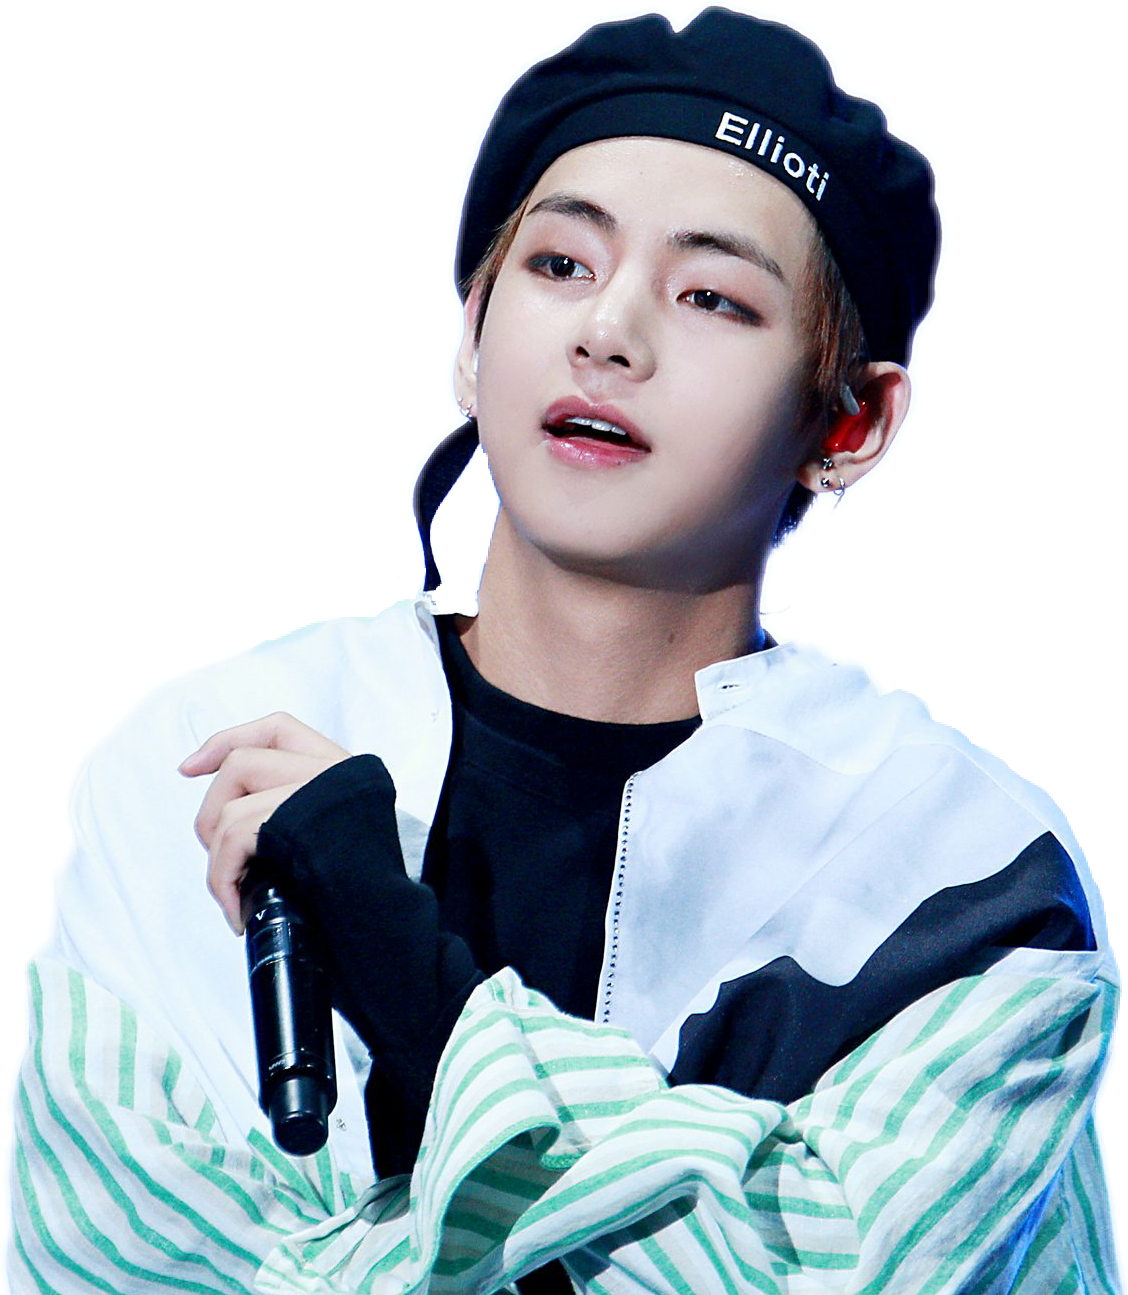 Bts Min Yoon Gi together with Red And White Wallpaper further Sticker V Taehyung Bts 236631303079212 moreover How Can I Set An Animated Background additionally Wallpaper For Iphone. on sad backgrounds